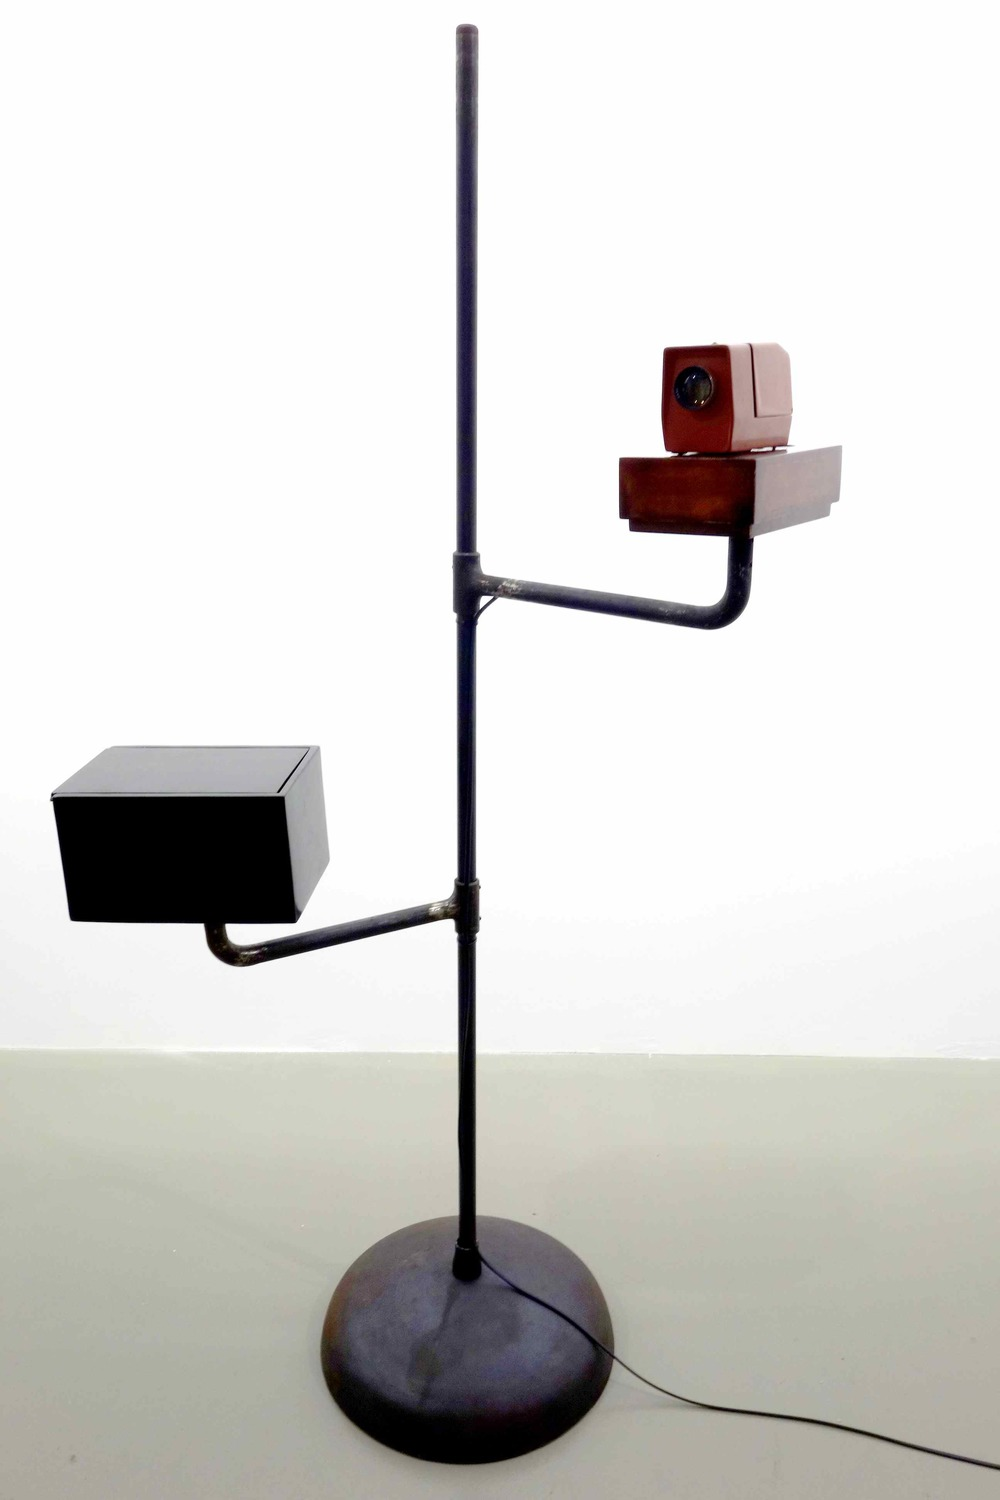 Lacquerscope #3  2014 Resin composite medium format (50mm) projector. Iron stand, base and swivel arms 174.5 x 102 cm